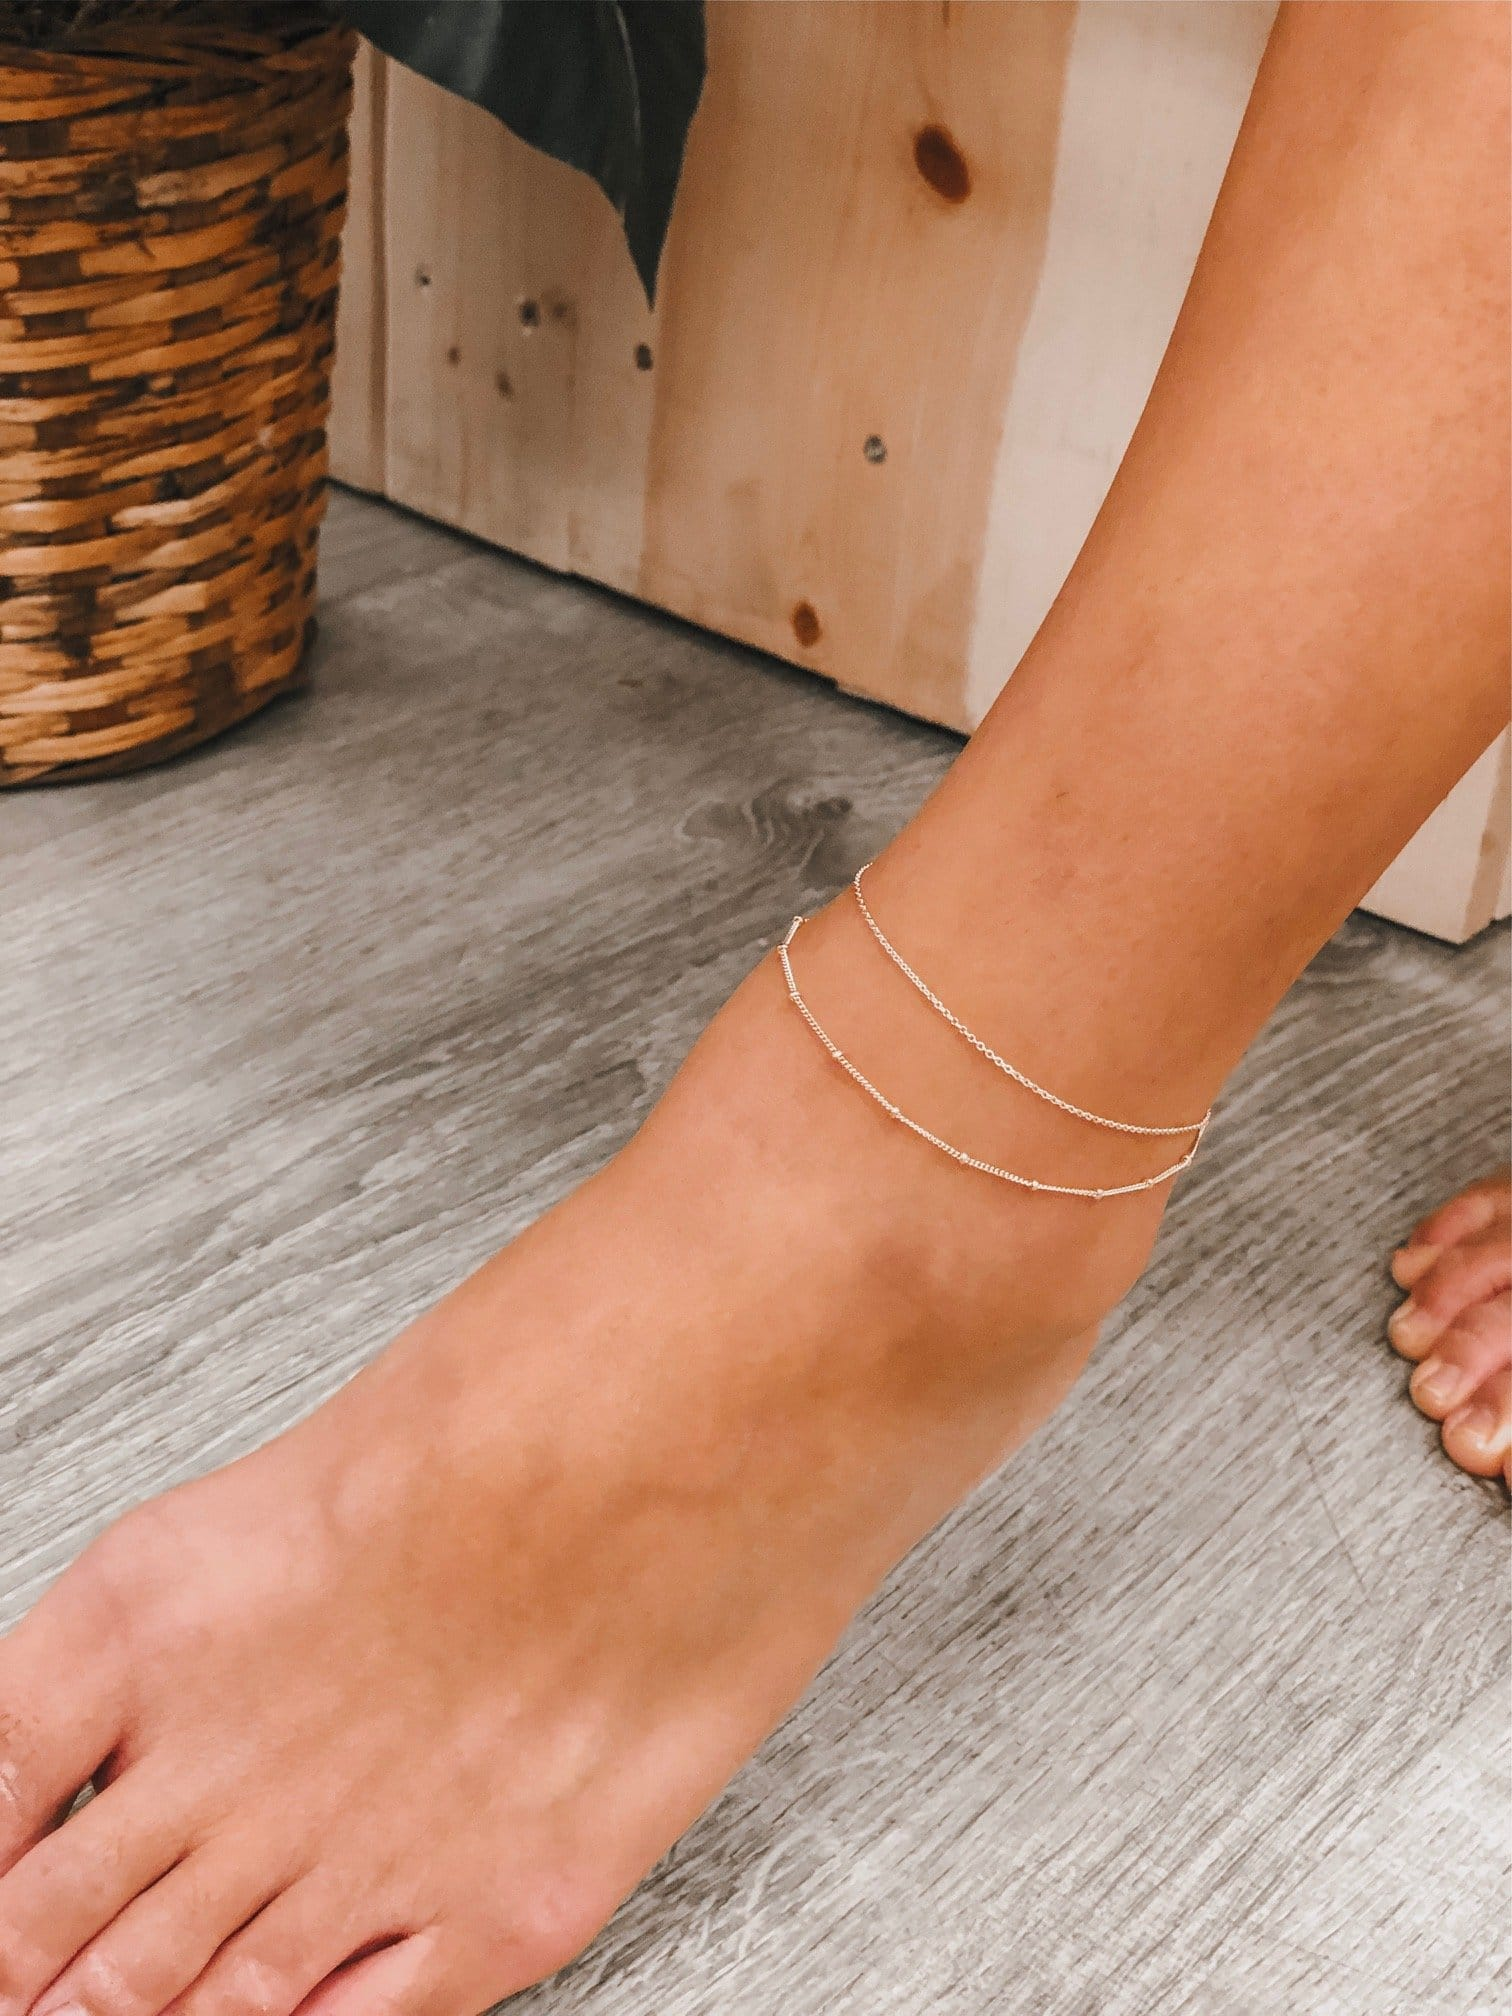 Elegant 14K Gold Filled Flat Cable and Satellite 2in1 Layered Anklet